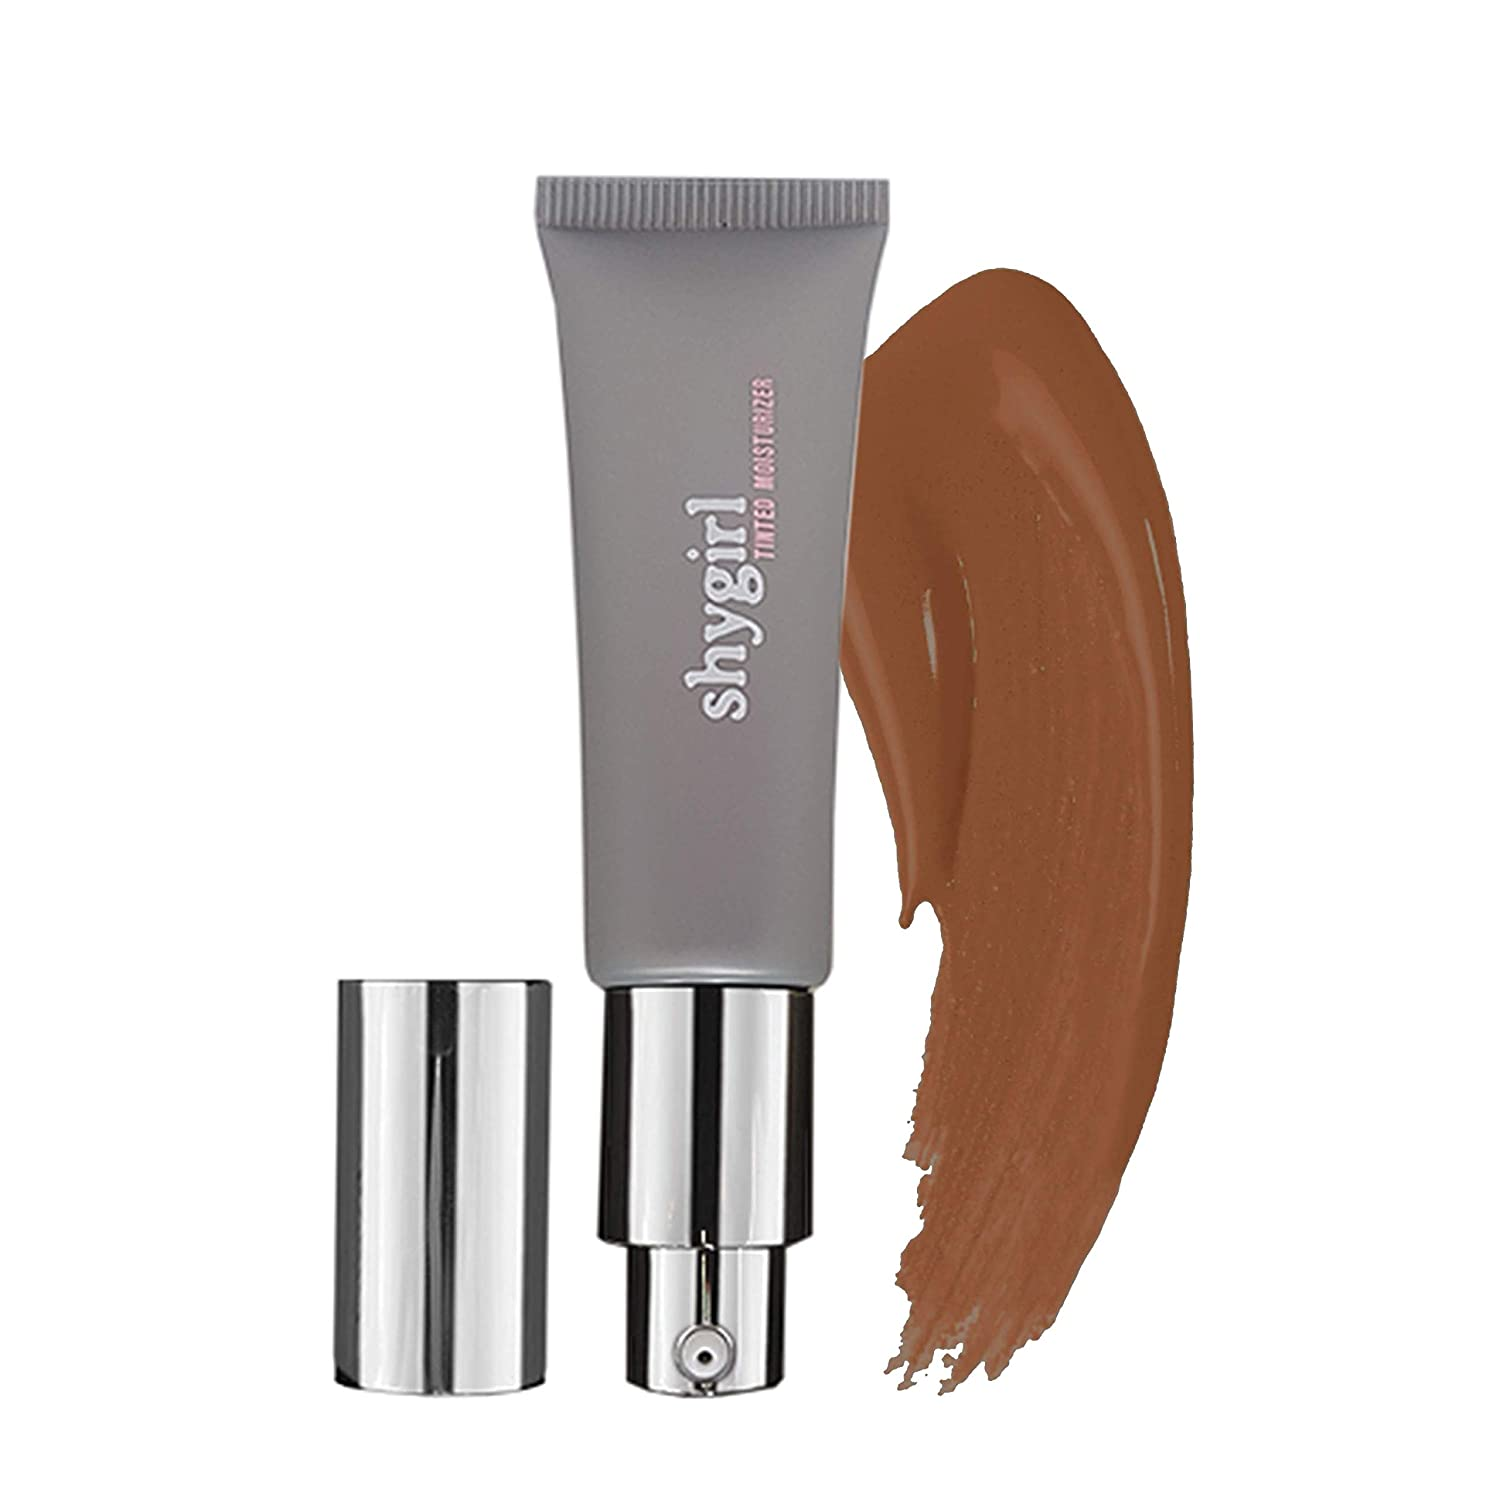 SHYGIRL Los Angeles – TINTED MOISTURIZER (Brave)   ULTRA Hydrating, Natural Looking Coverage! Sheer yet Buildable to even out SKIN TONES!